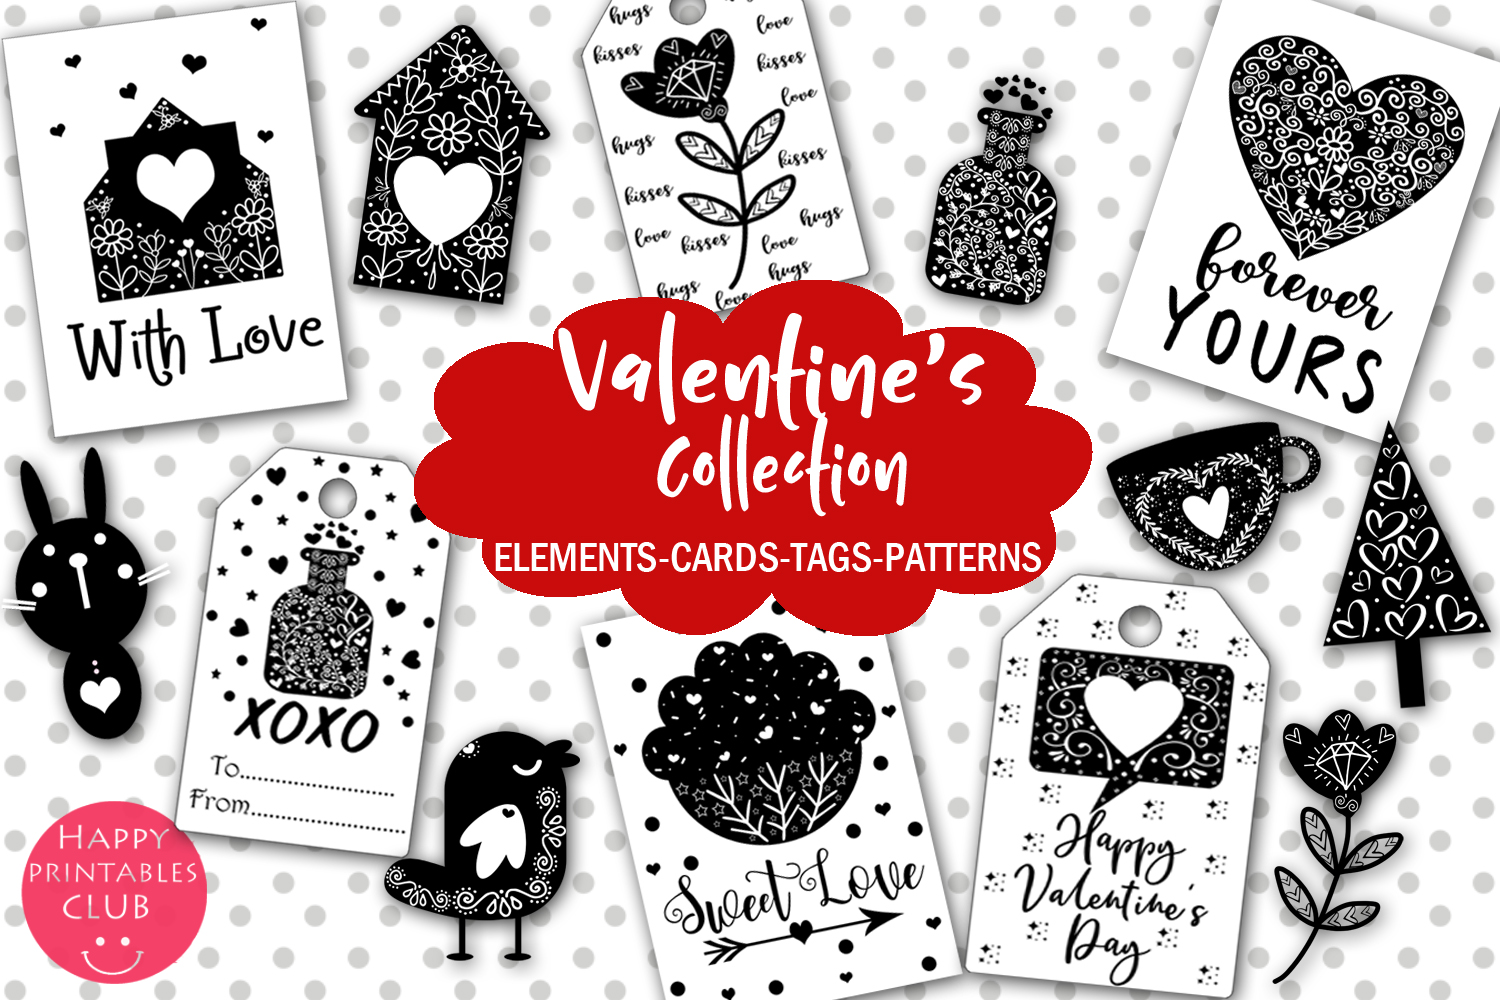 Cute Valentine S Day Collection Graphic By Happy Printables Club